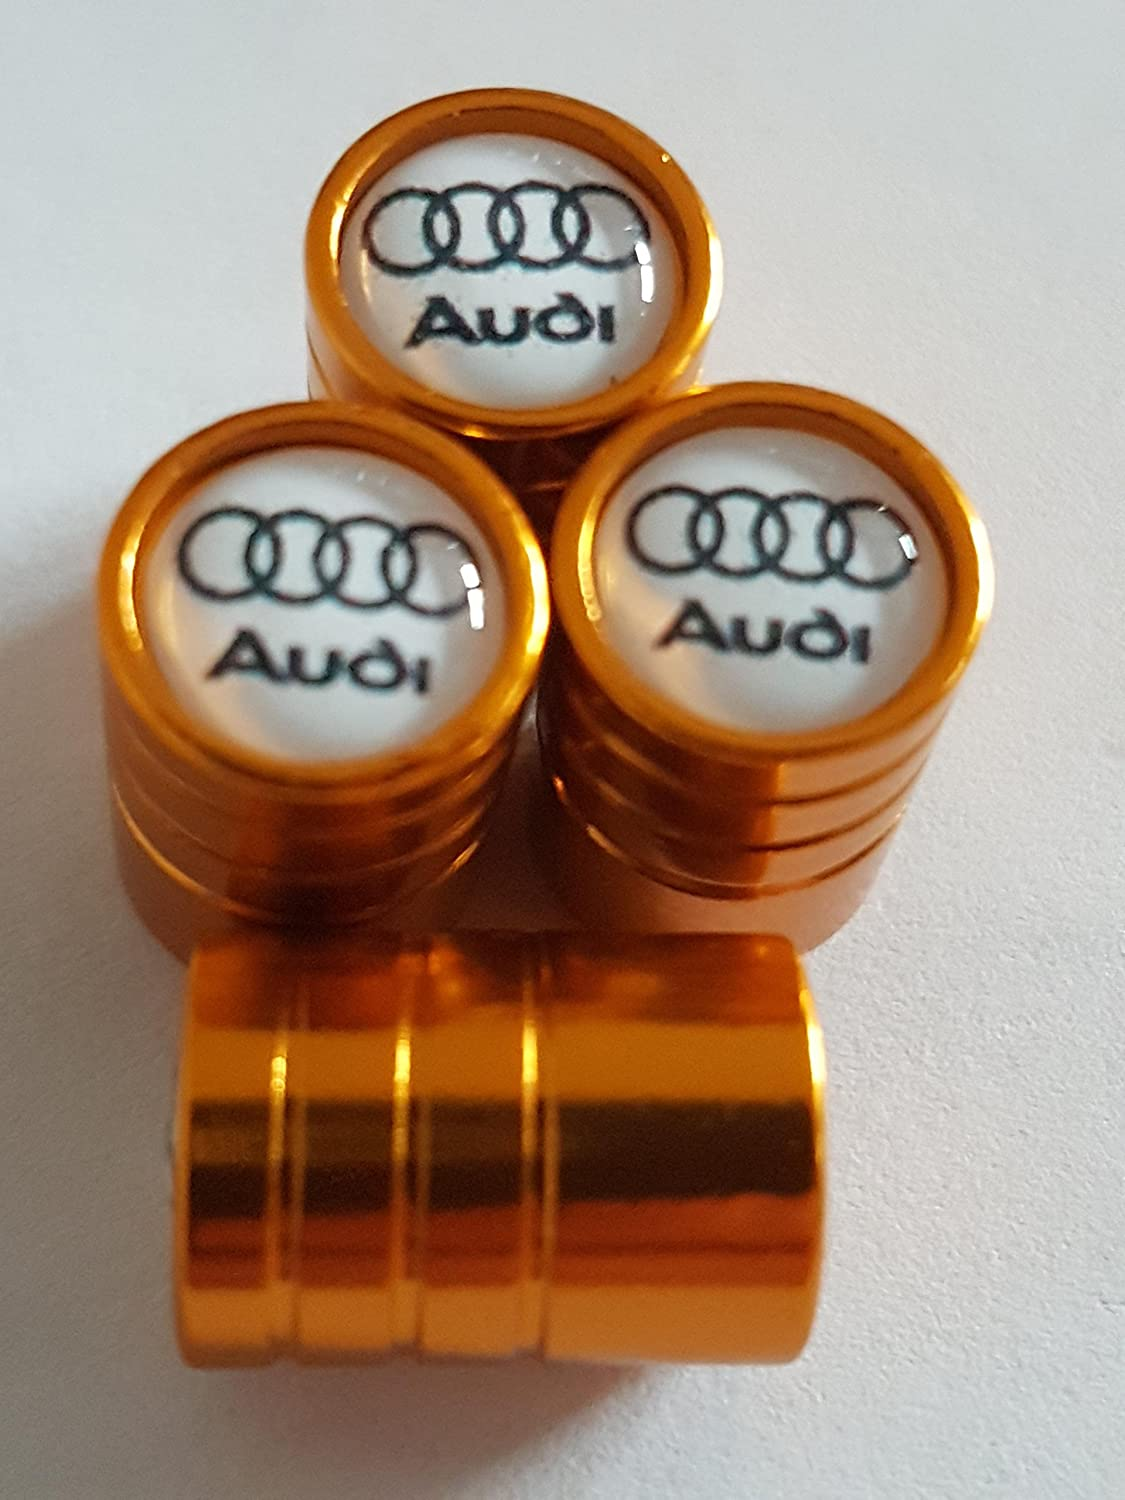 Speed Demons AUDI BLACK AND WHITE TOP GOLD DELUXE CAR VALVE TYRE DUST CAP EXCLUSIVE TO US A1 A3 A4 A5 A6 A7 A8 Q3 Q5 Q7 TT R8 RS E-TRON S LINE